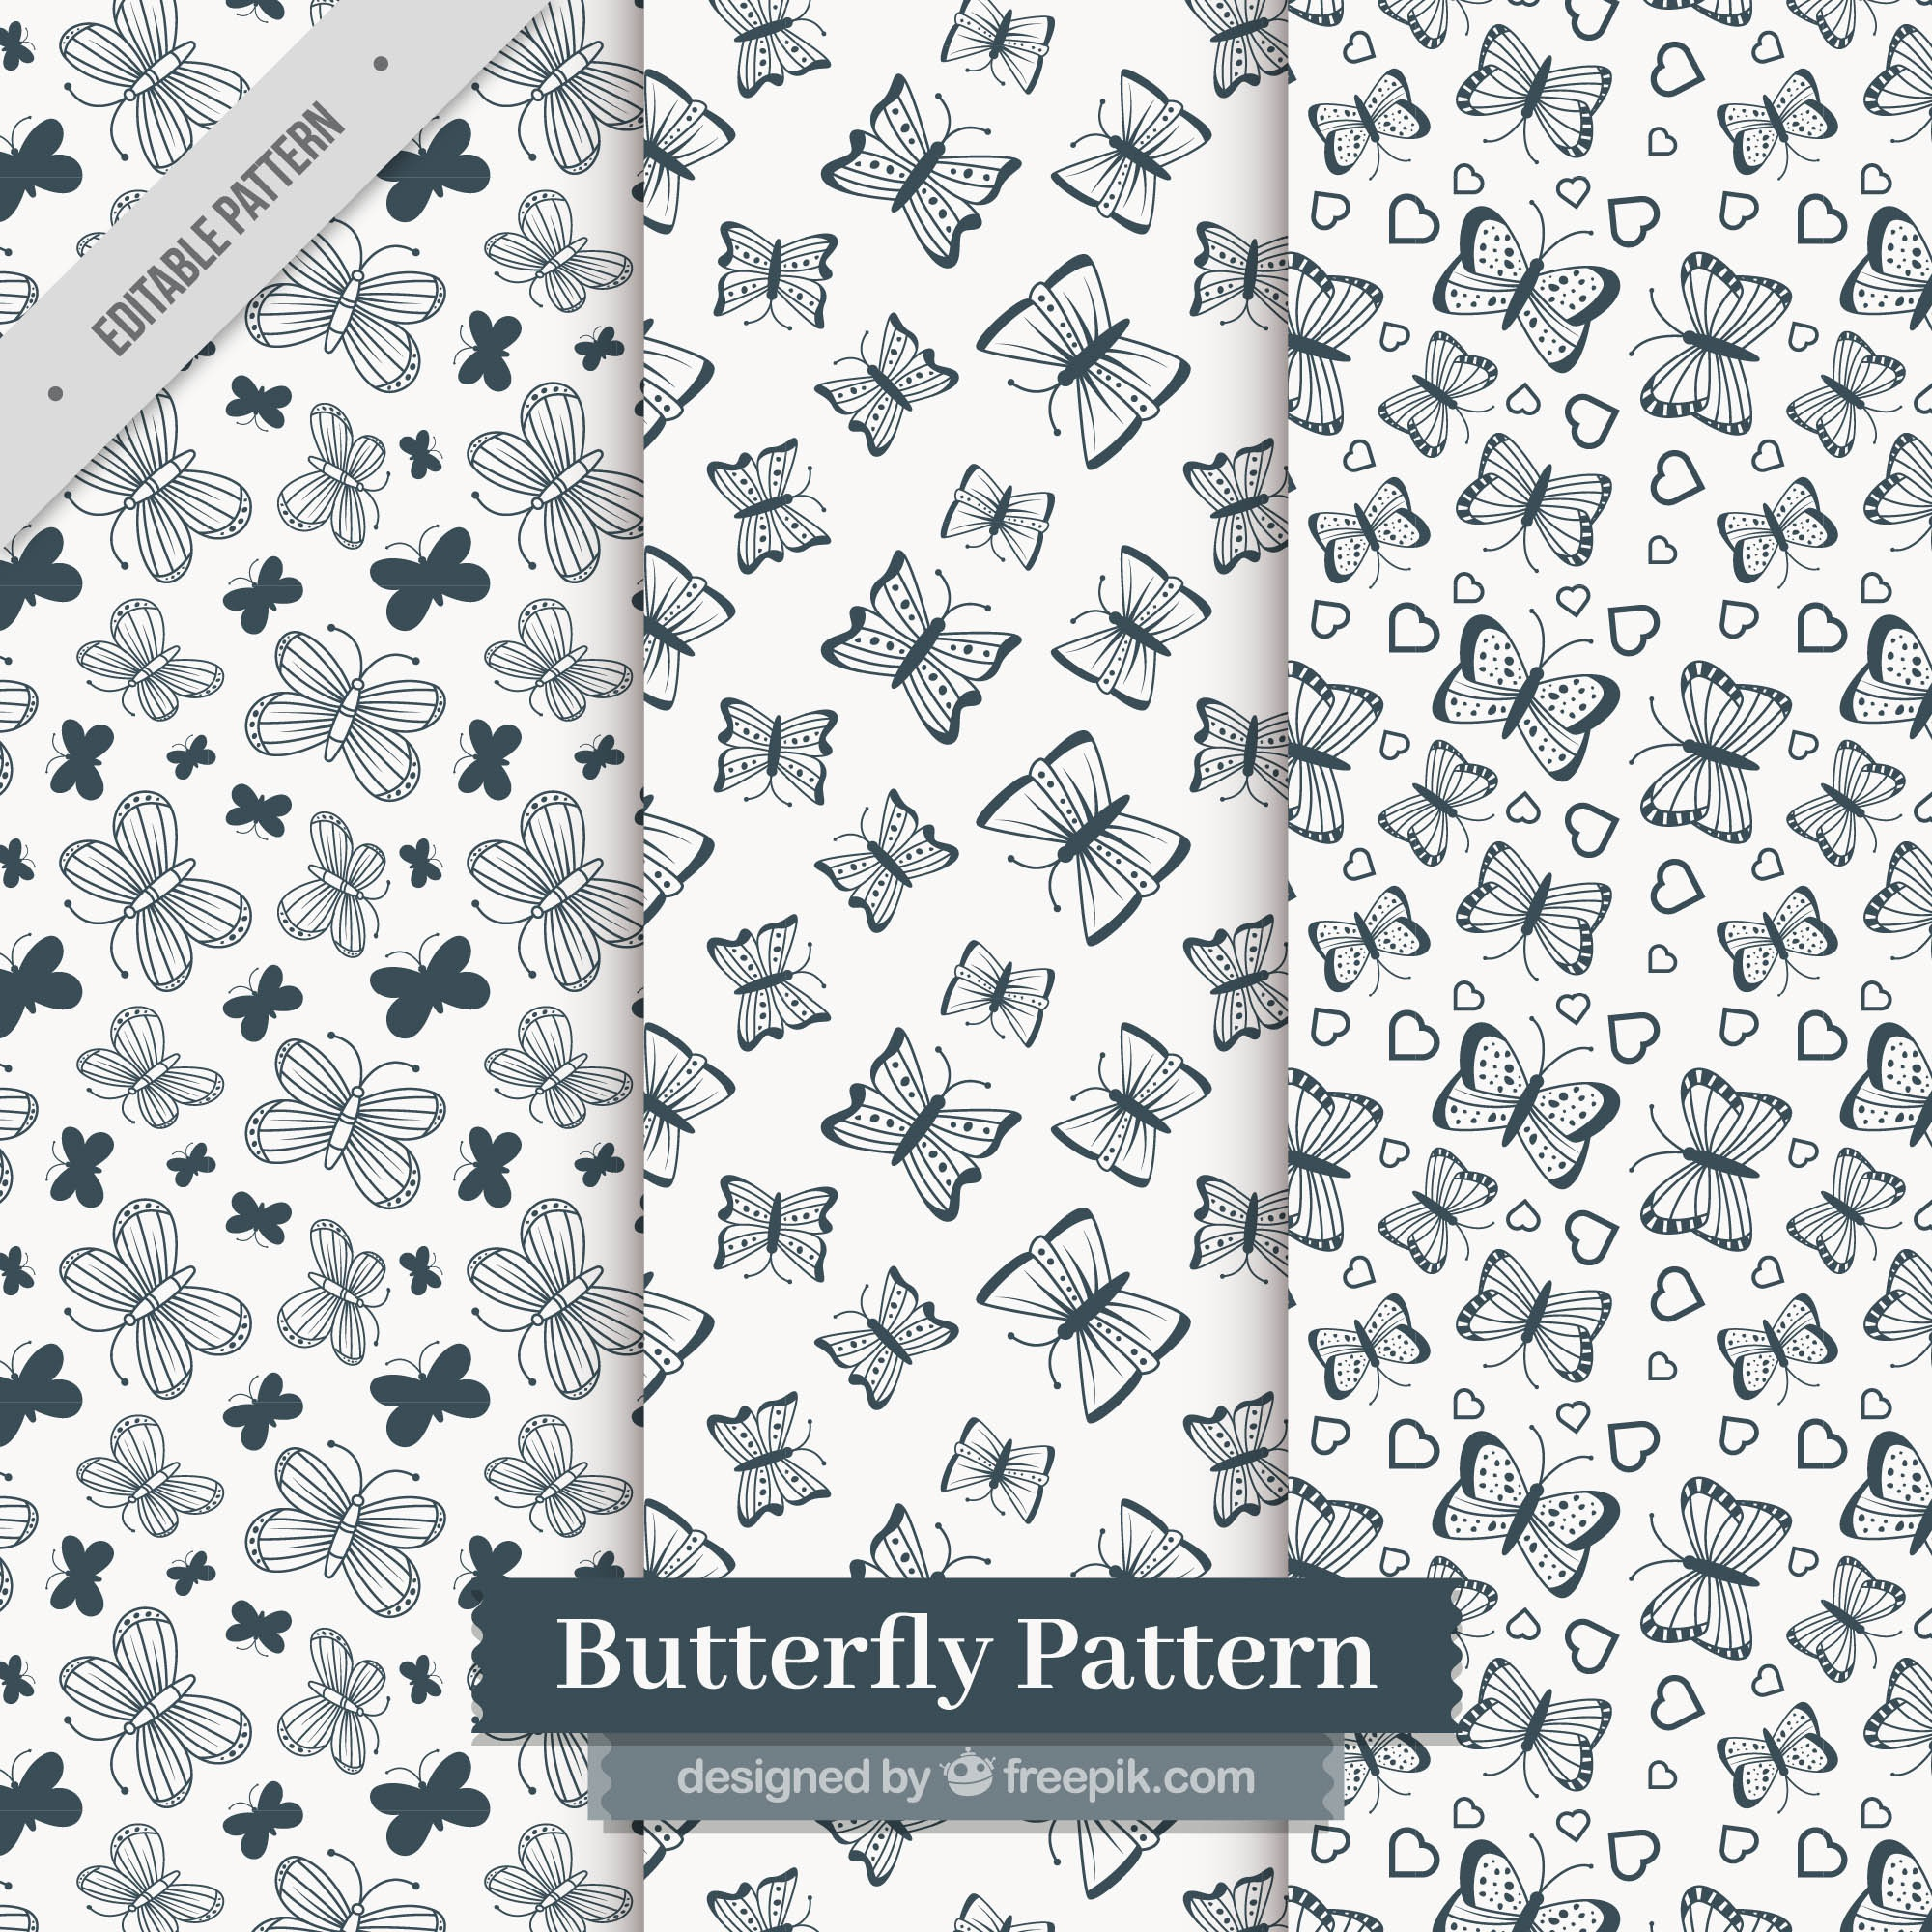 Dark blue patterns of butterflies